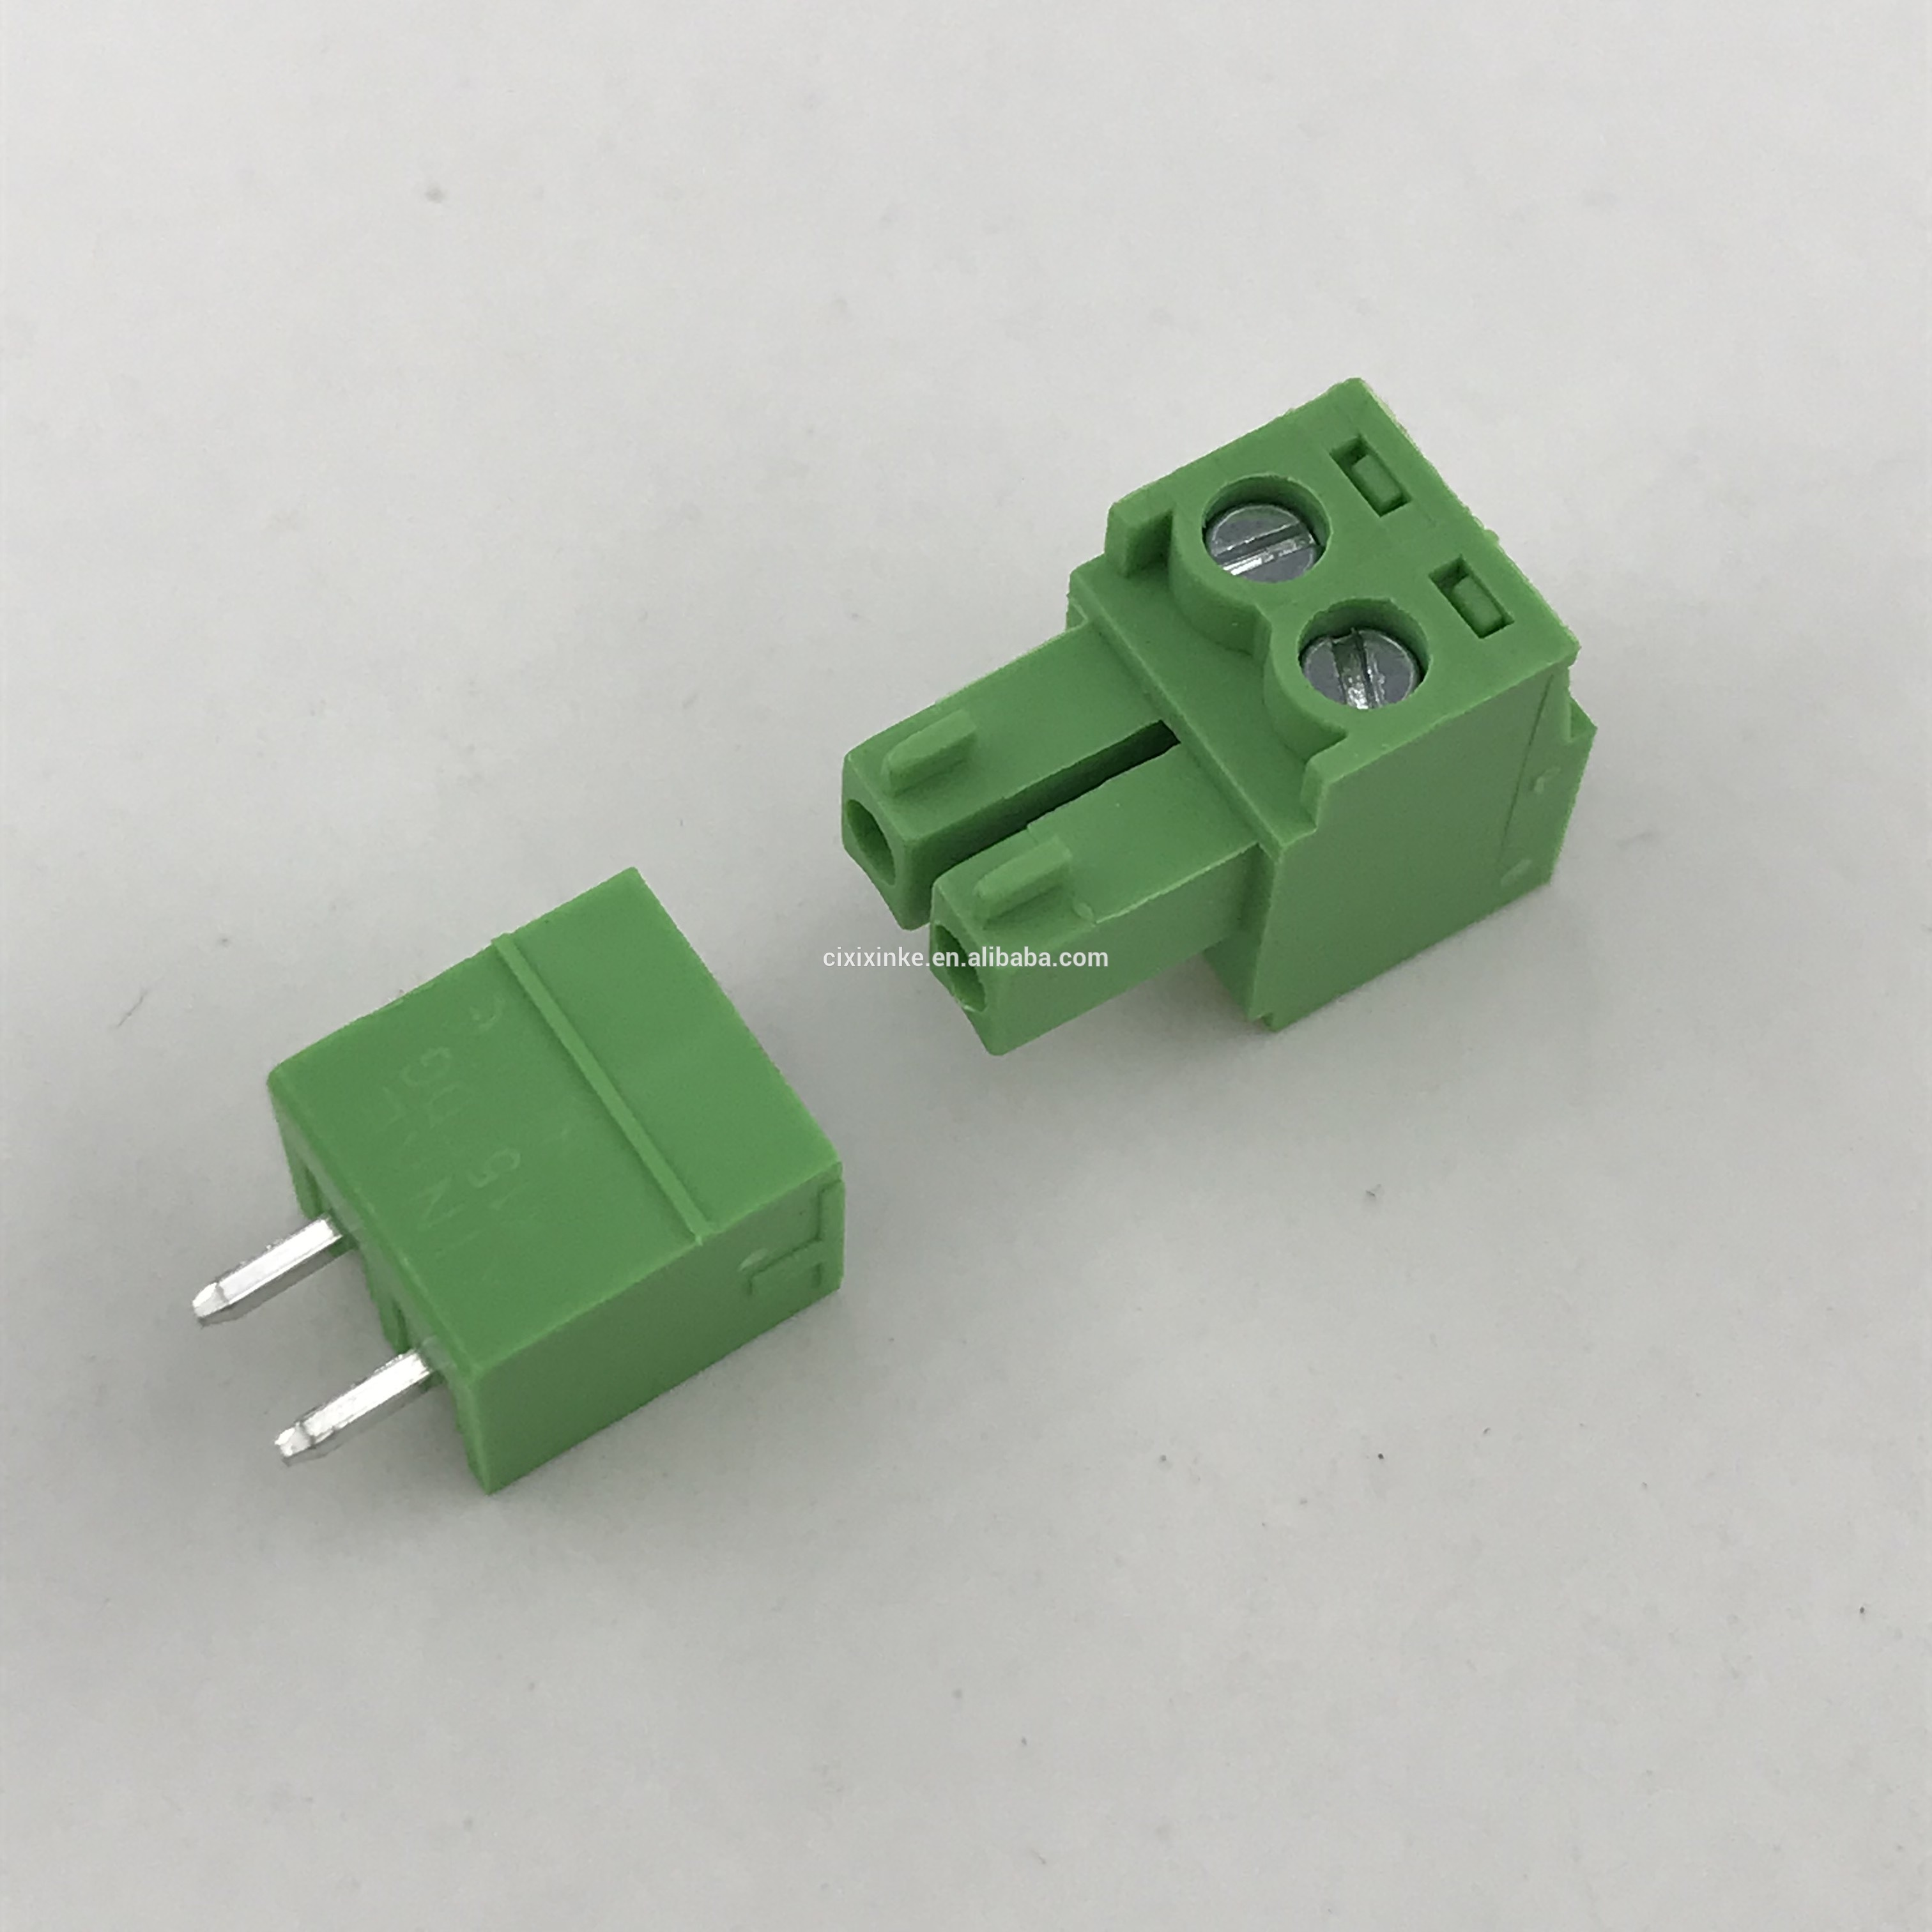 2 pin 3.81mm Pitch plug-in PCB terminal block